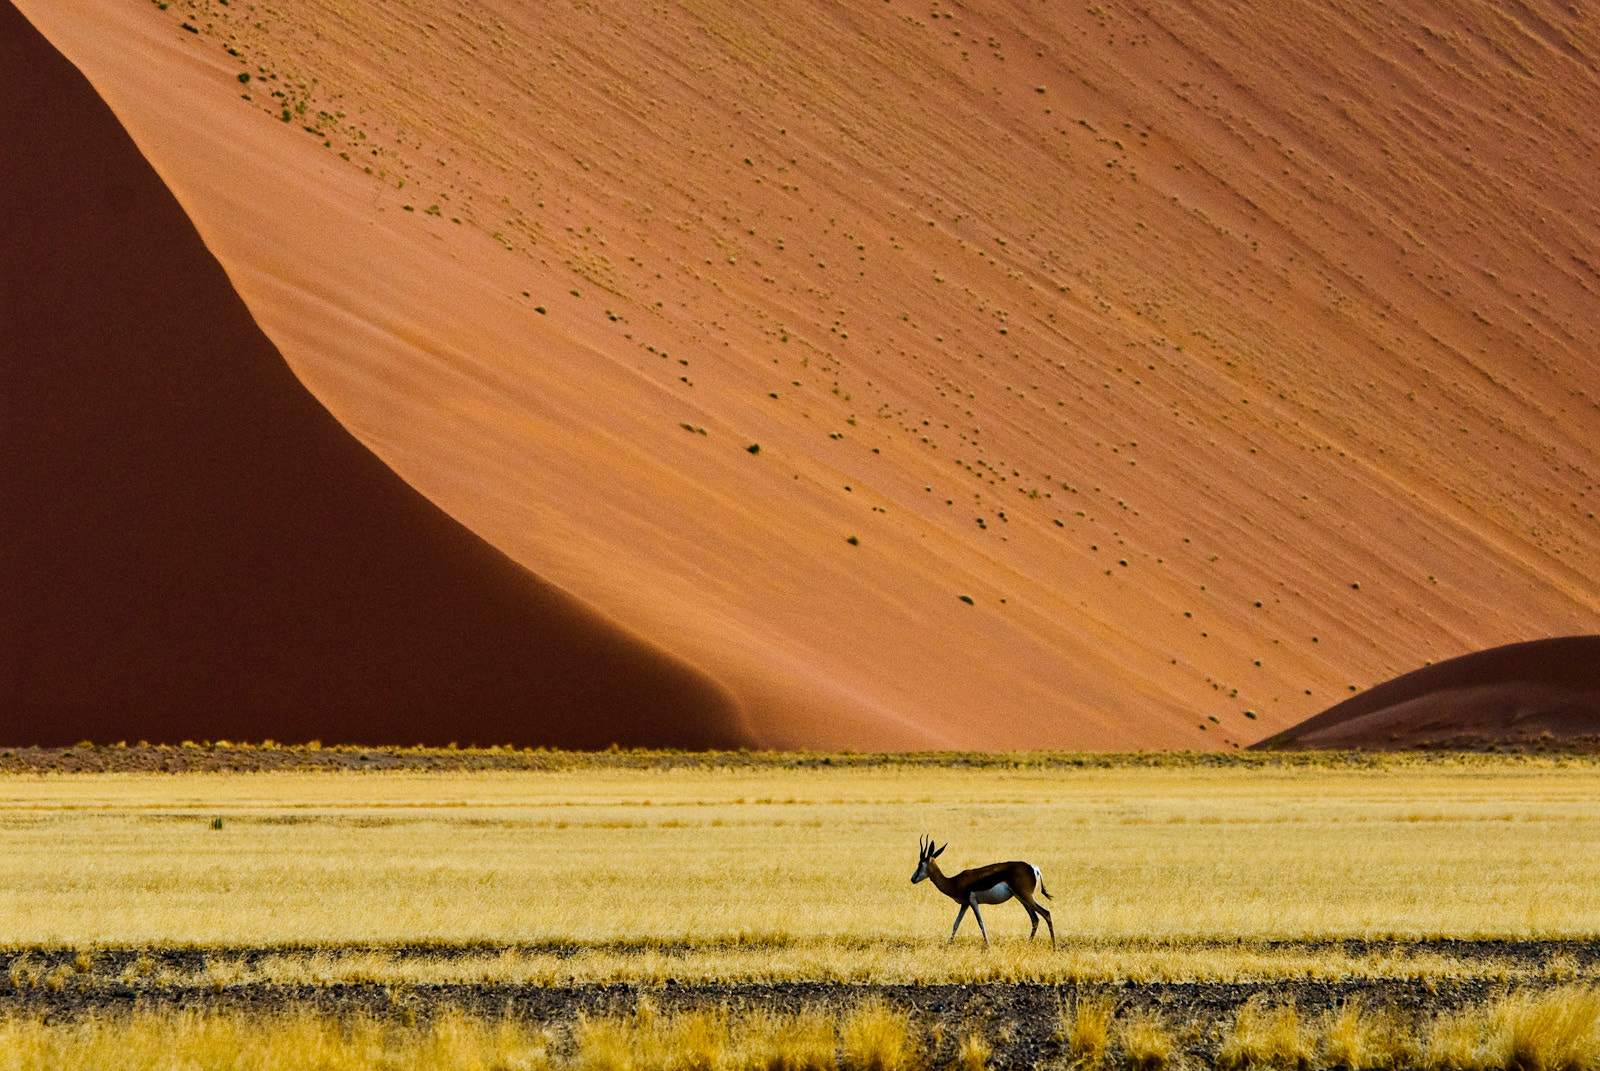 Photograph Alone by Gorazd Golob on 500px